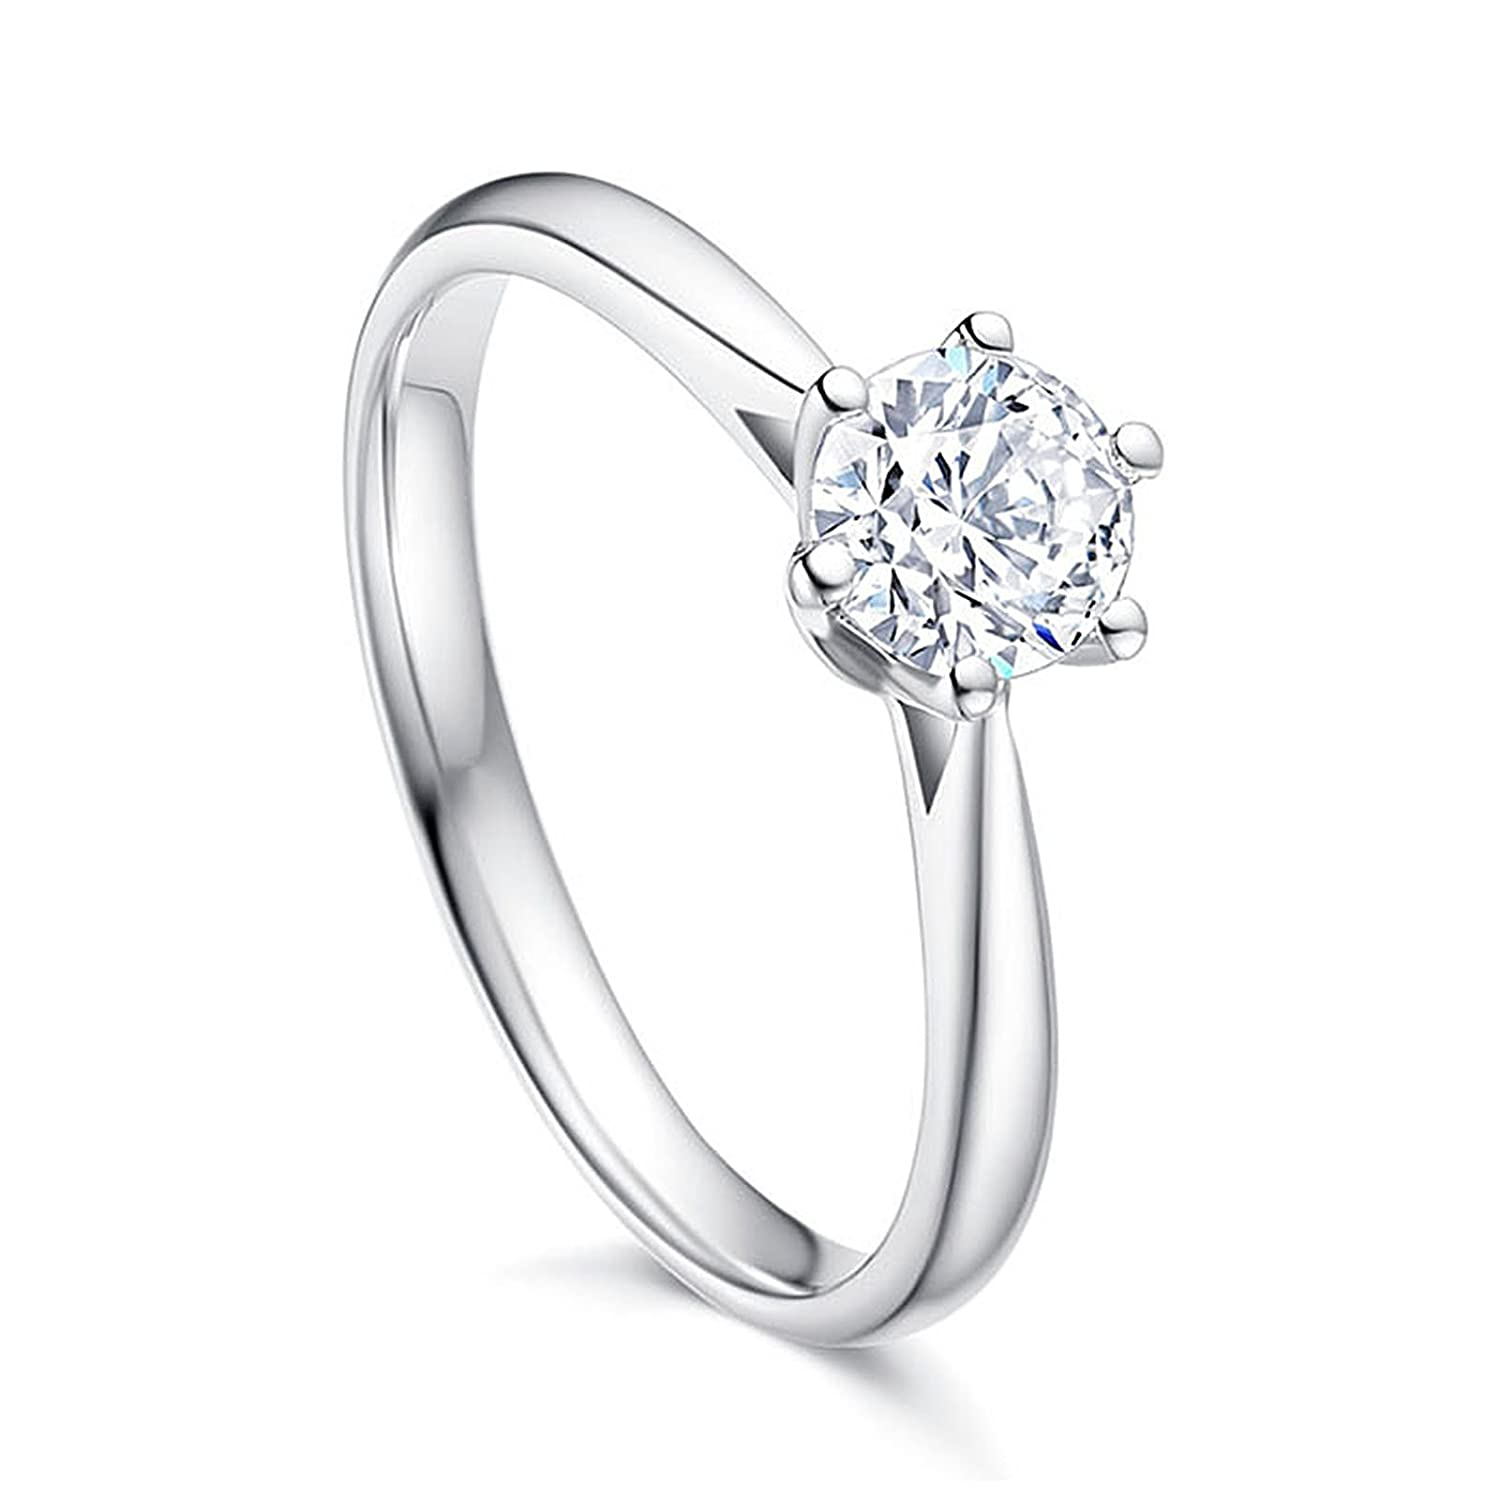 28d573a2c55 MultiWare Fashion 925 Solid Sterling Silver Ring Classic Women Beautiful  Gift